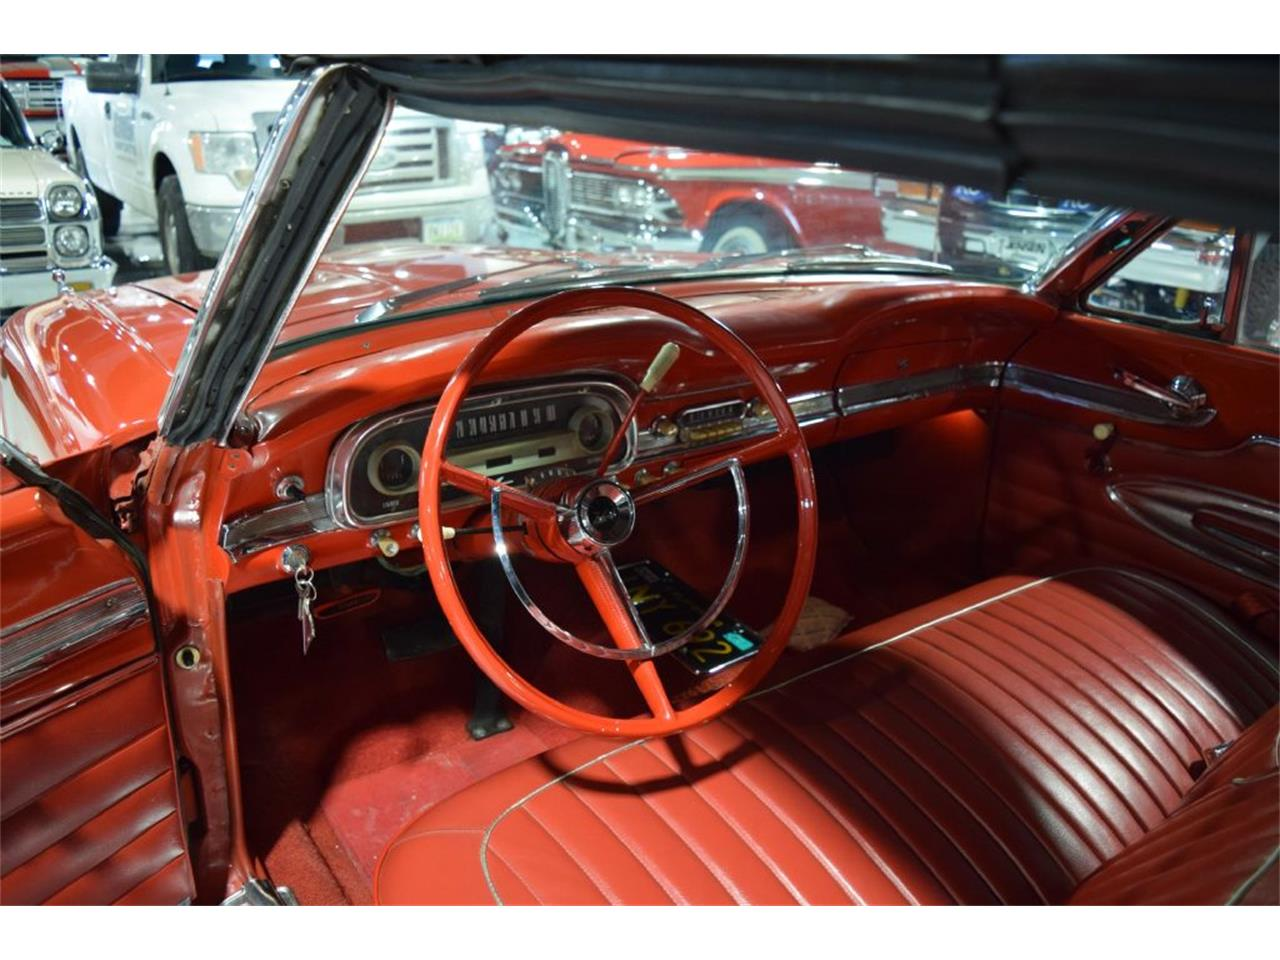 1963 Ford Falcon Futura for sale in Sioux City, IA – photo 8